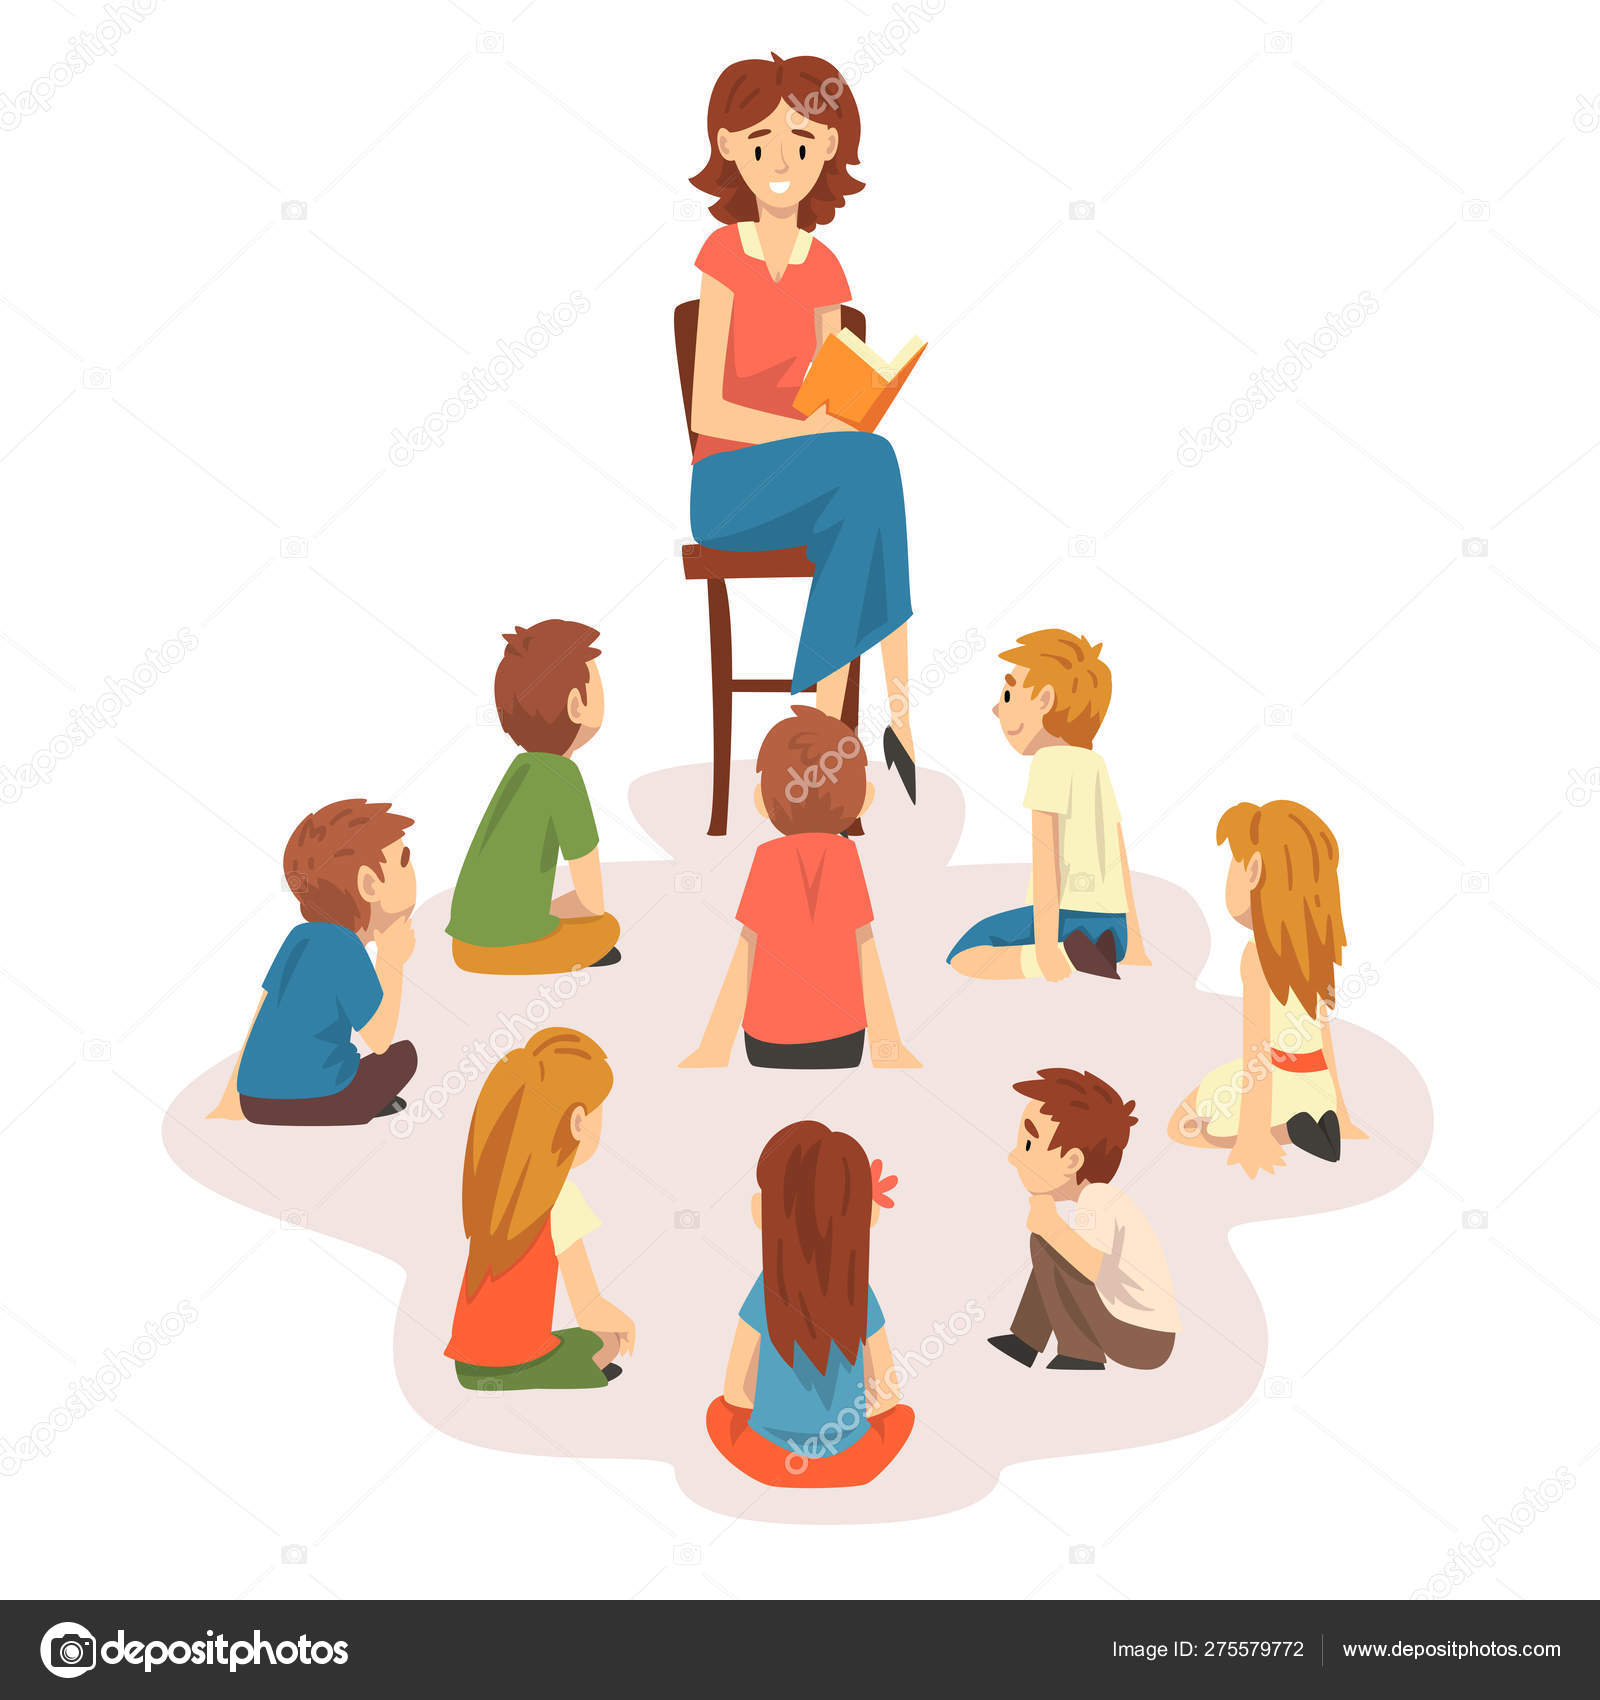 Stupendous Group Of Preschool Kids Sitting On Floor Teacher Sitting On Gmtry Best Dining Table And Chair Ideas Images Gmtryco